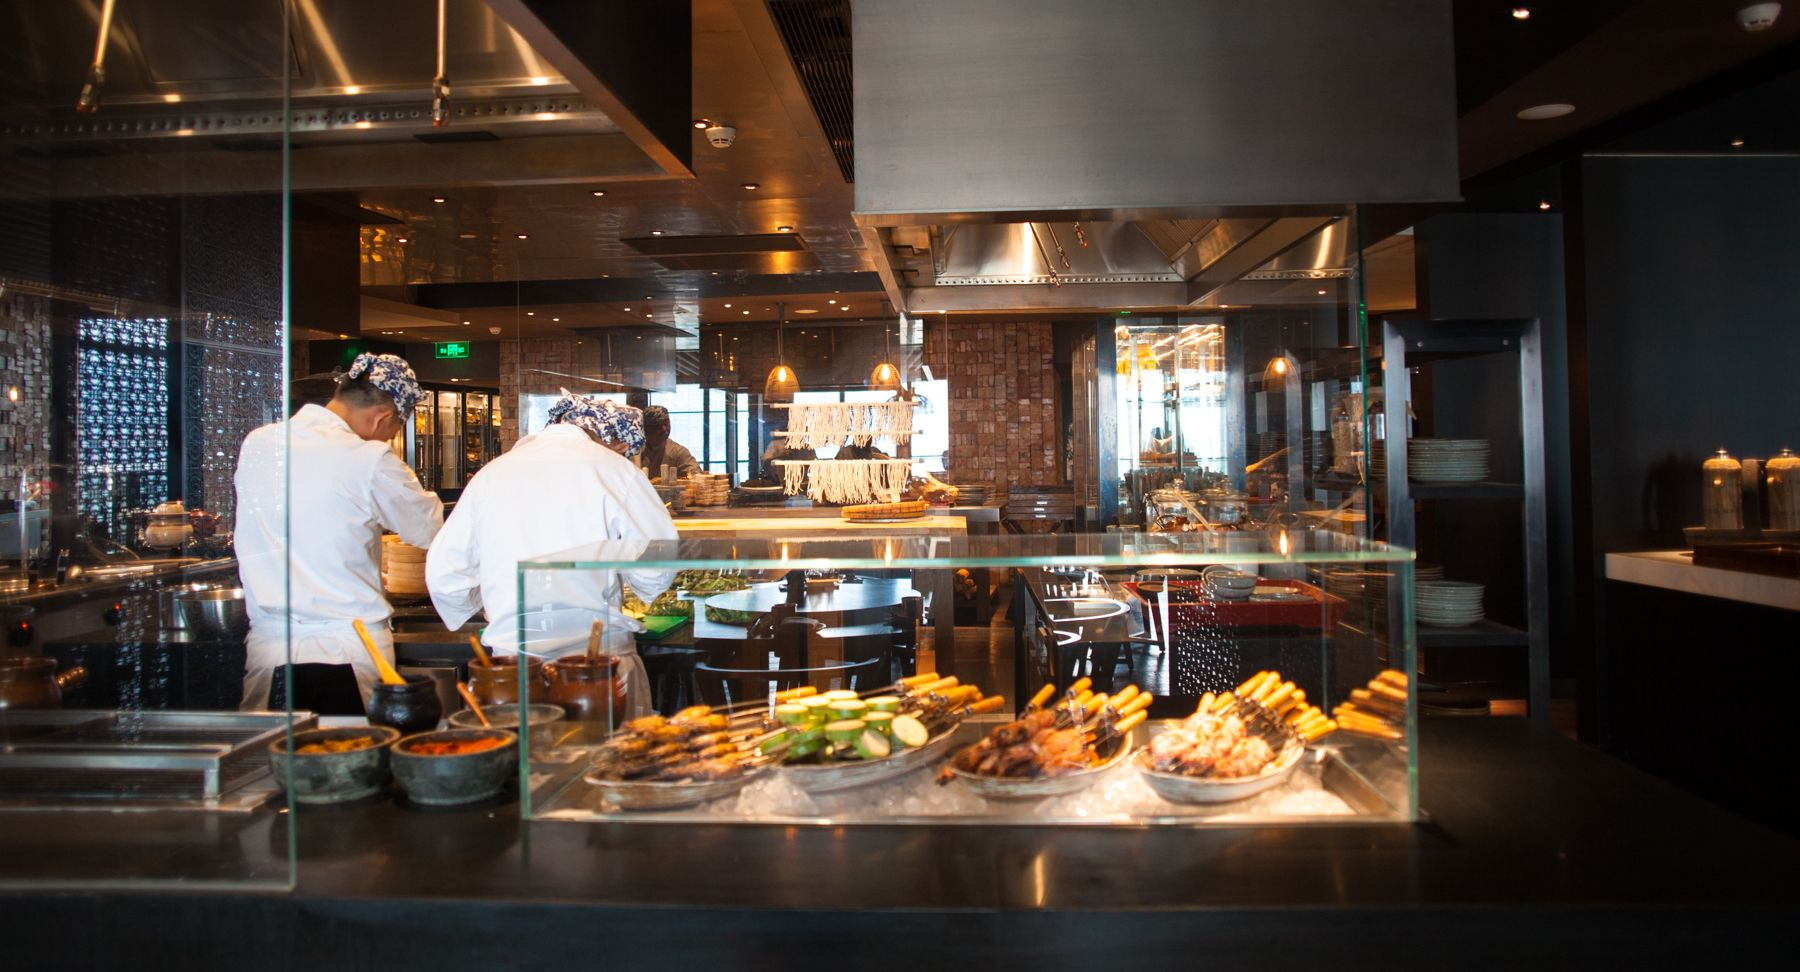 Country kitchen rosewood beijing google search